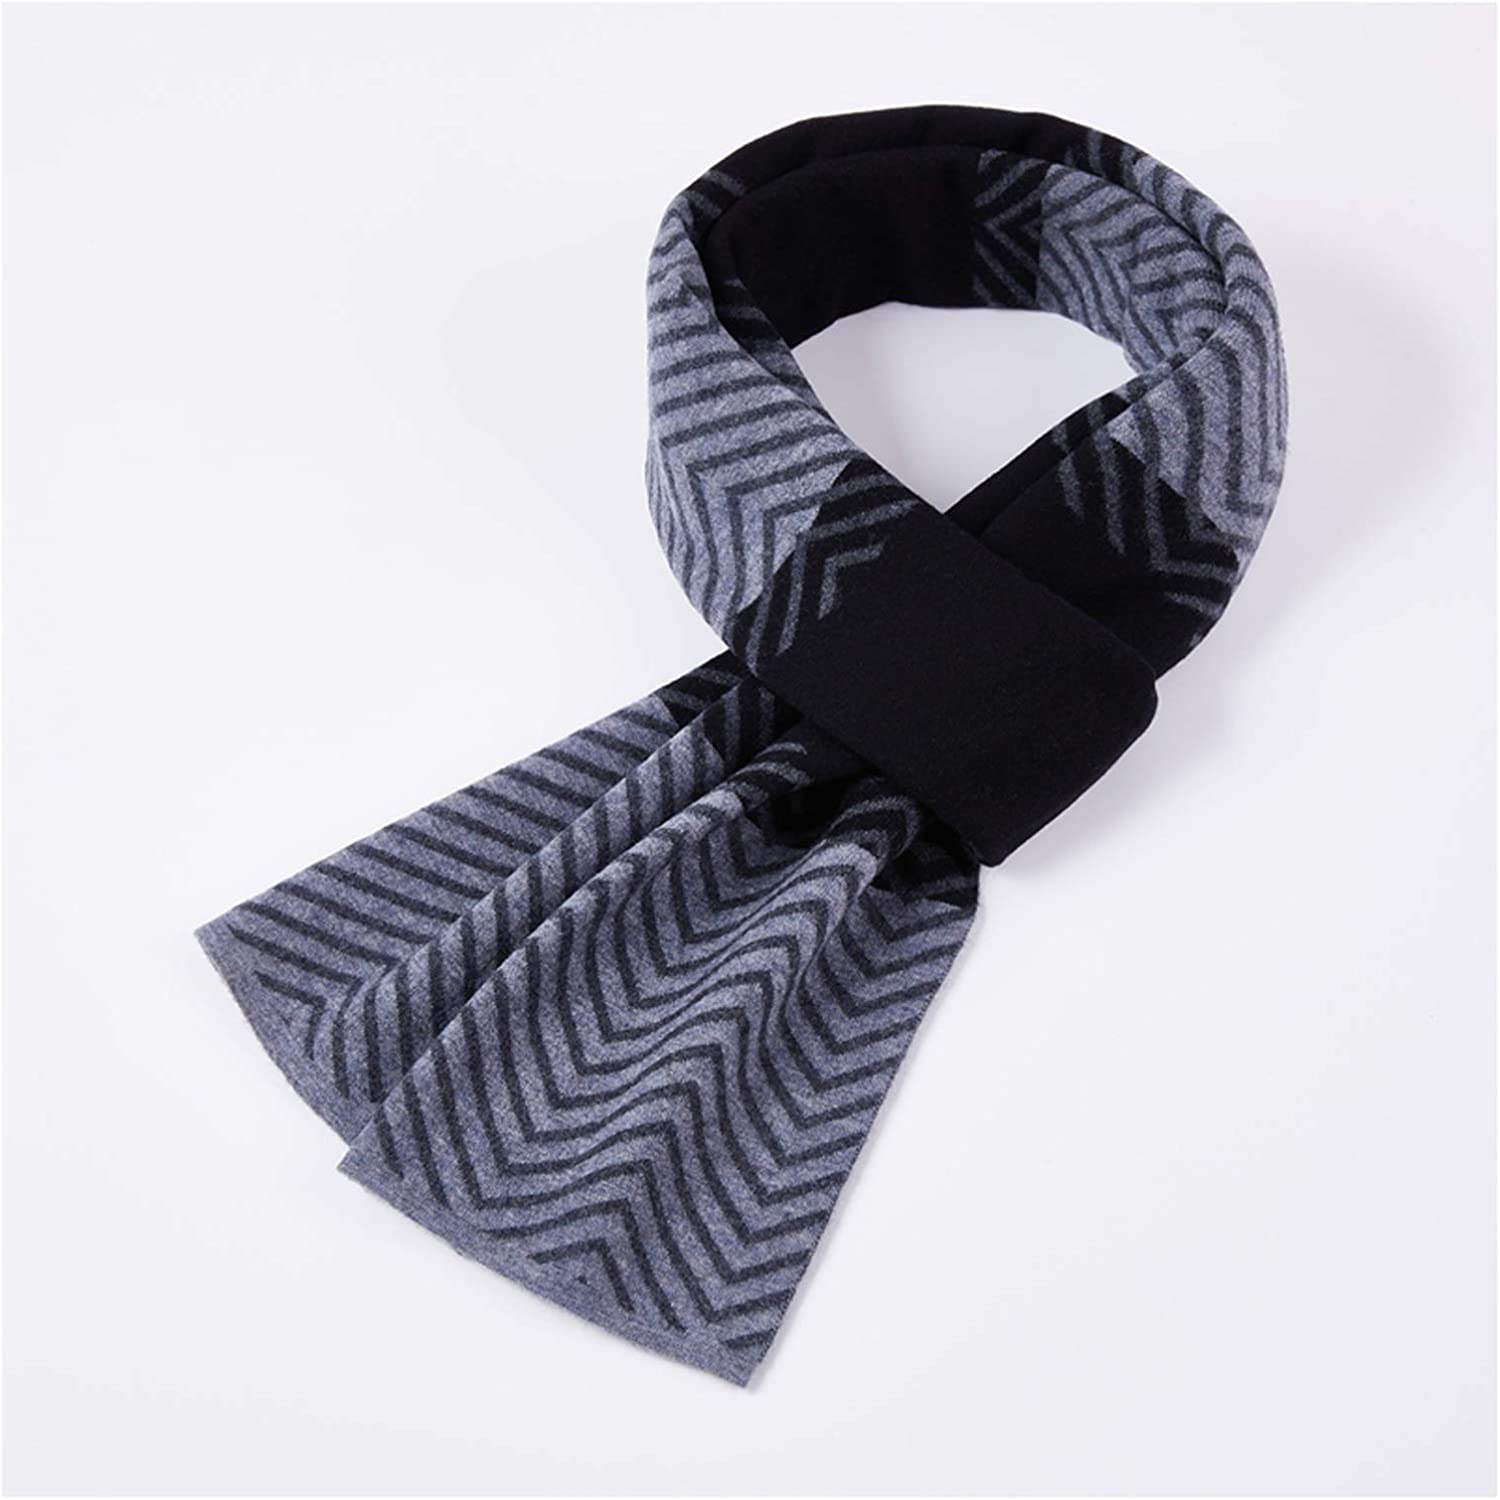 KGDC Max 74% OFF Scarves Shawls Max 47% OFF Men's Pure in Thick Wool Scarf Autumn